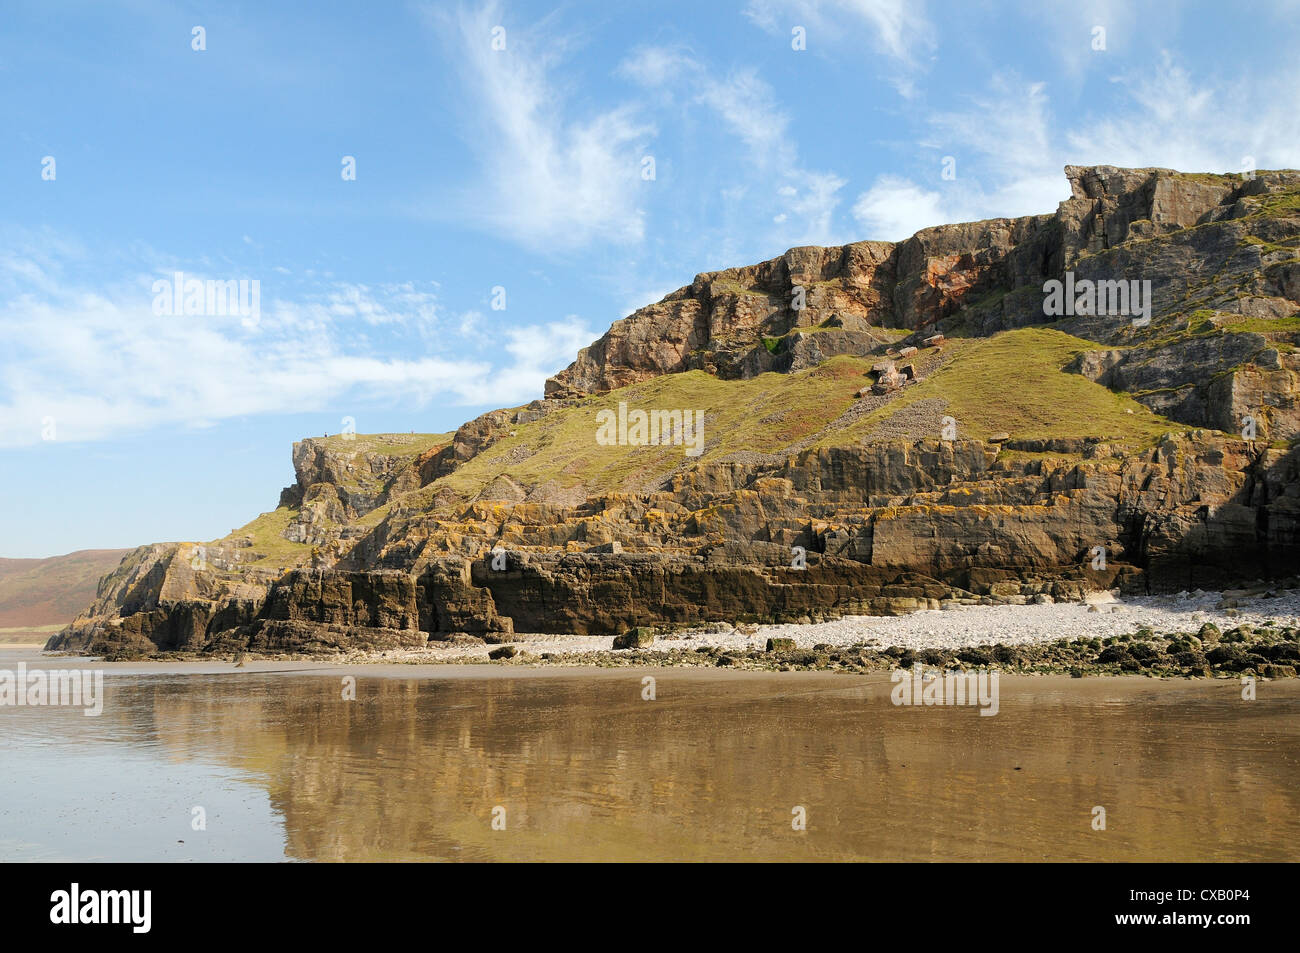 Coastal cliffs at Rhossili, viewed from below at low tide, The Gower peninsula, Wales, United Kingdom, Europe - Stock Image